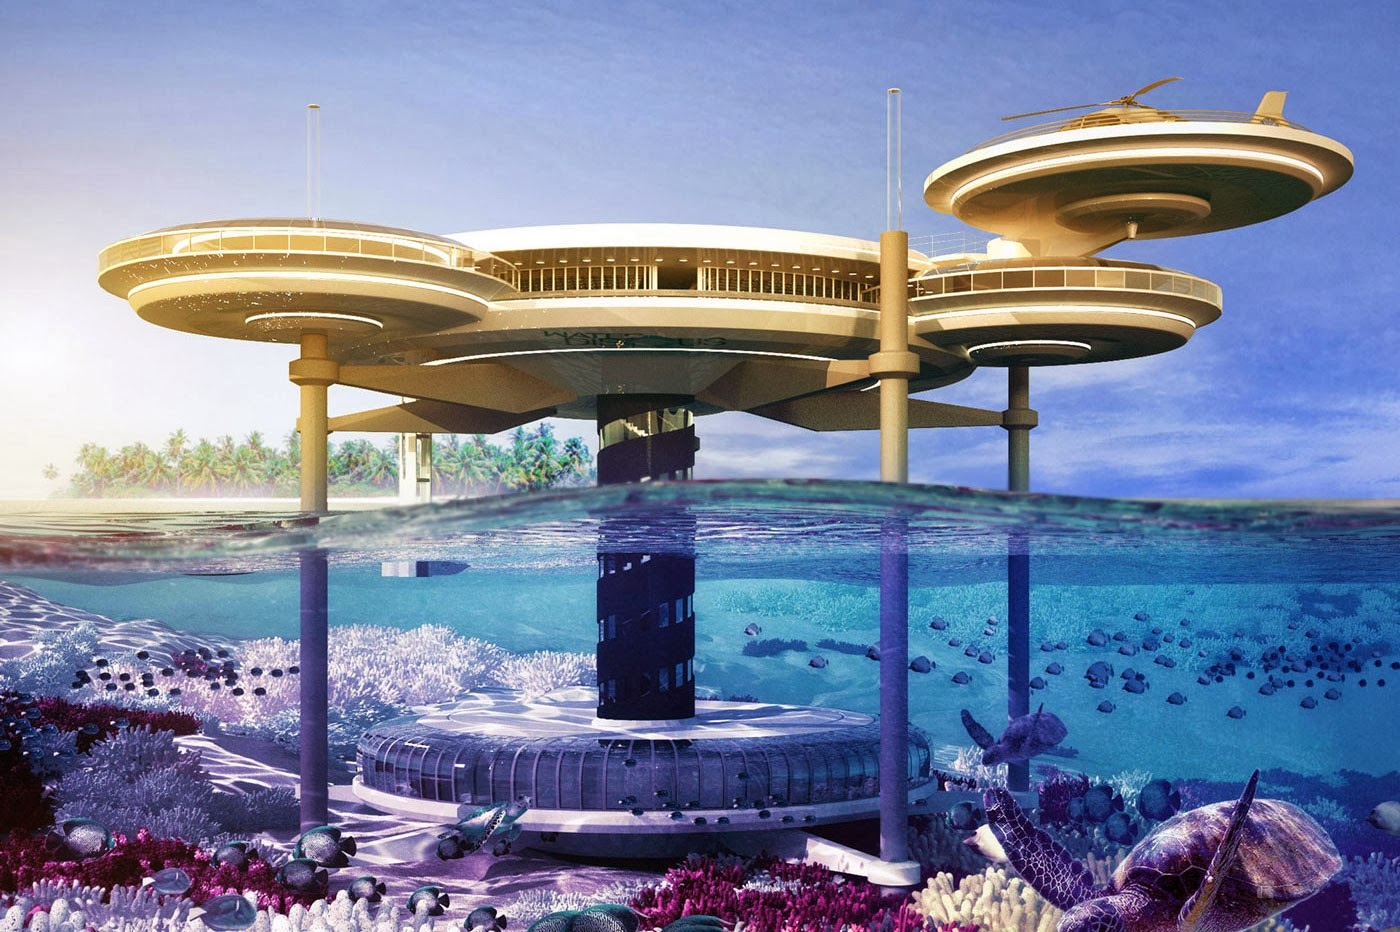 Travel trip journey hydropolis underwater hotel dubai for Nicest hotel in the world dubai